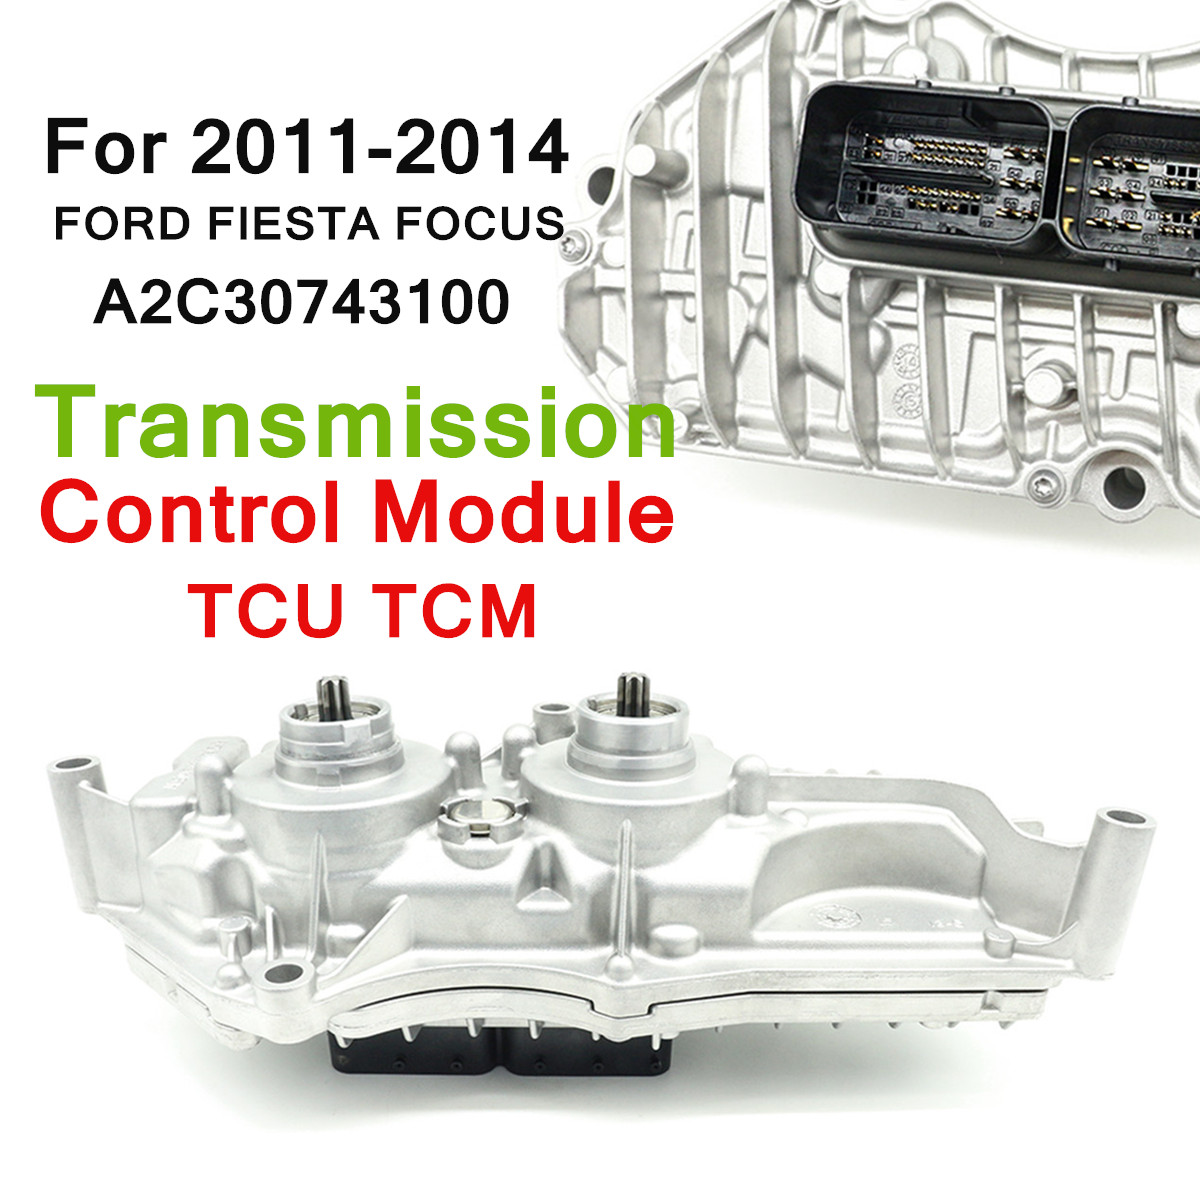 for FORD FIESTA FOCUS 2011 2014 Transmission Control Module TCU TCM A2C30743100 Direct Replacement Silver Auto Replacement Parts